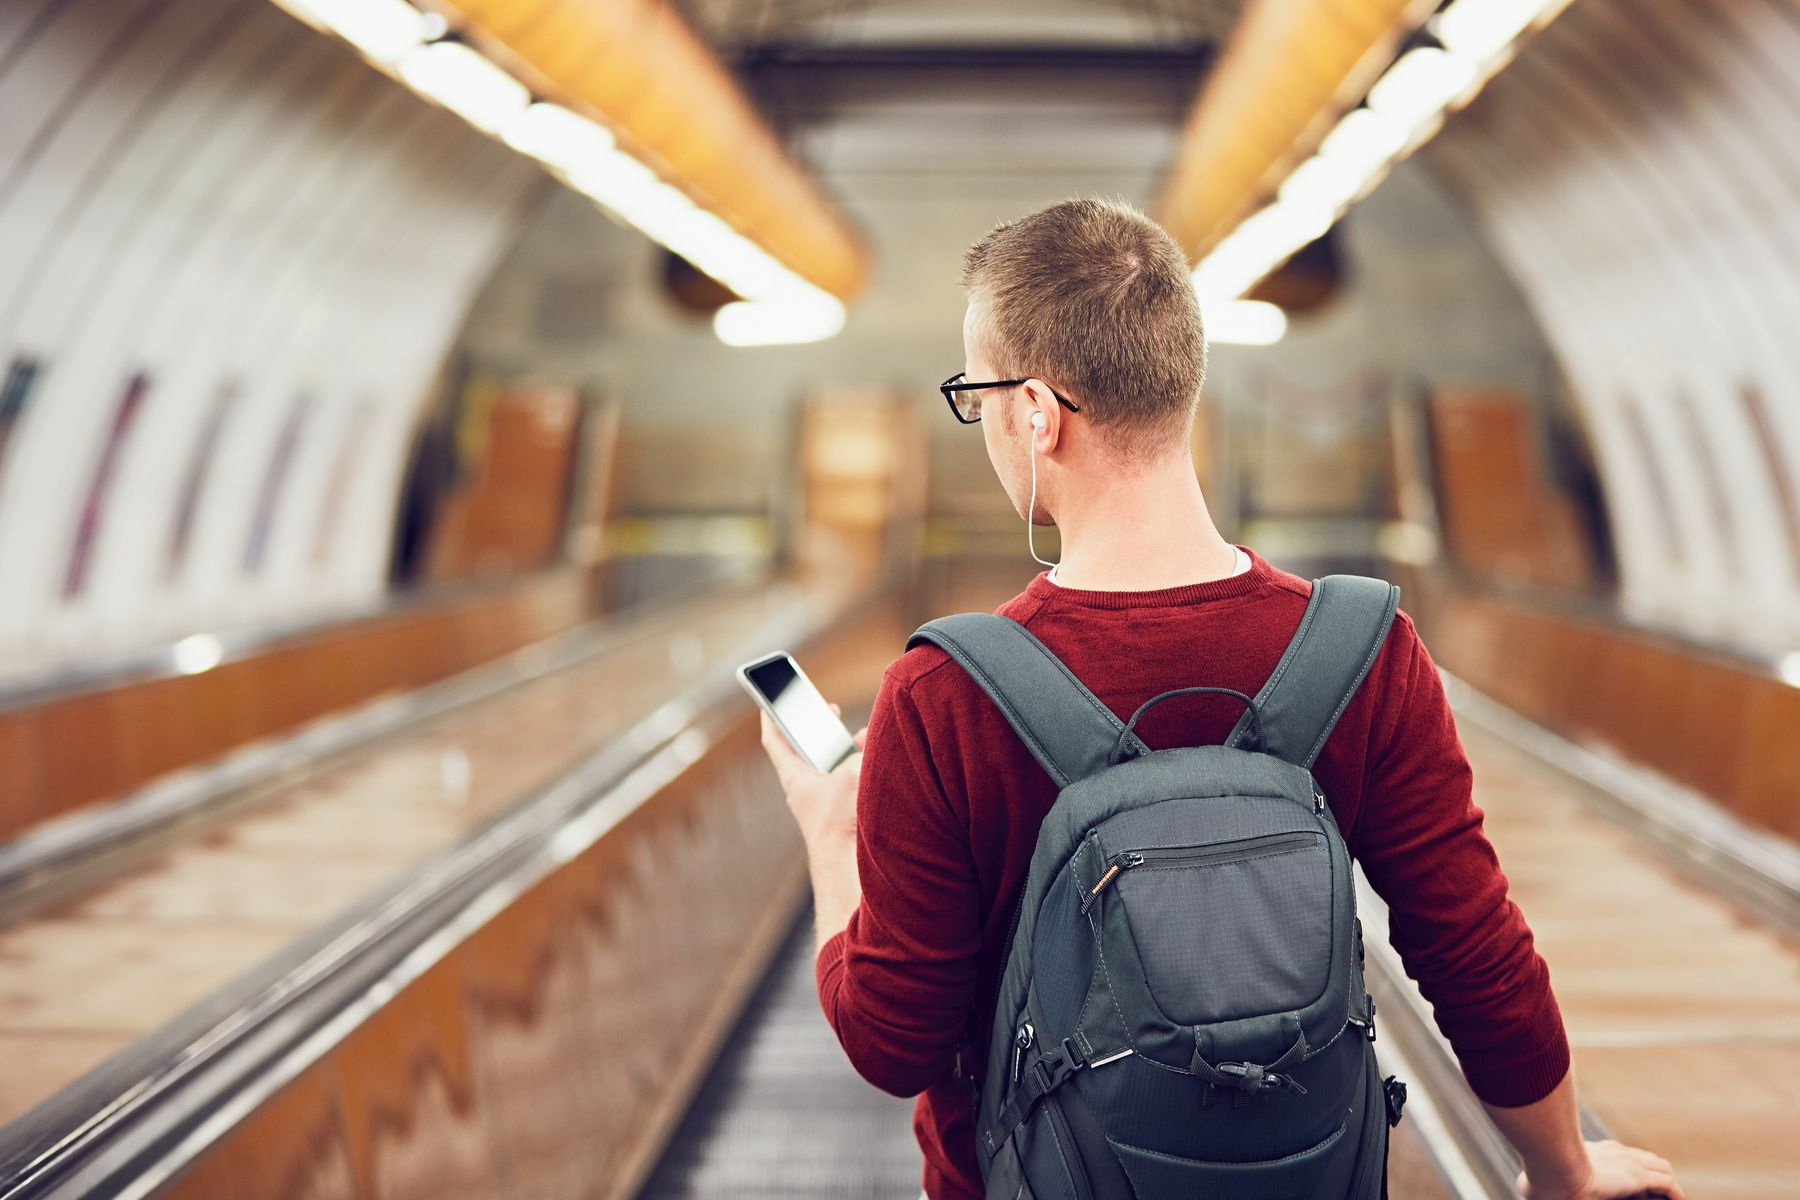 Young man checking his phone in an underground train station